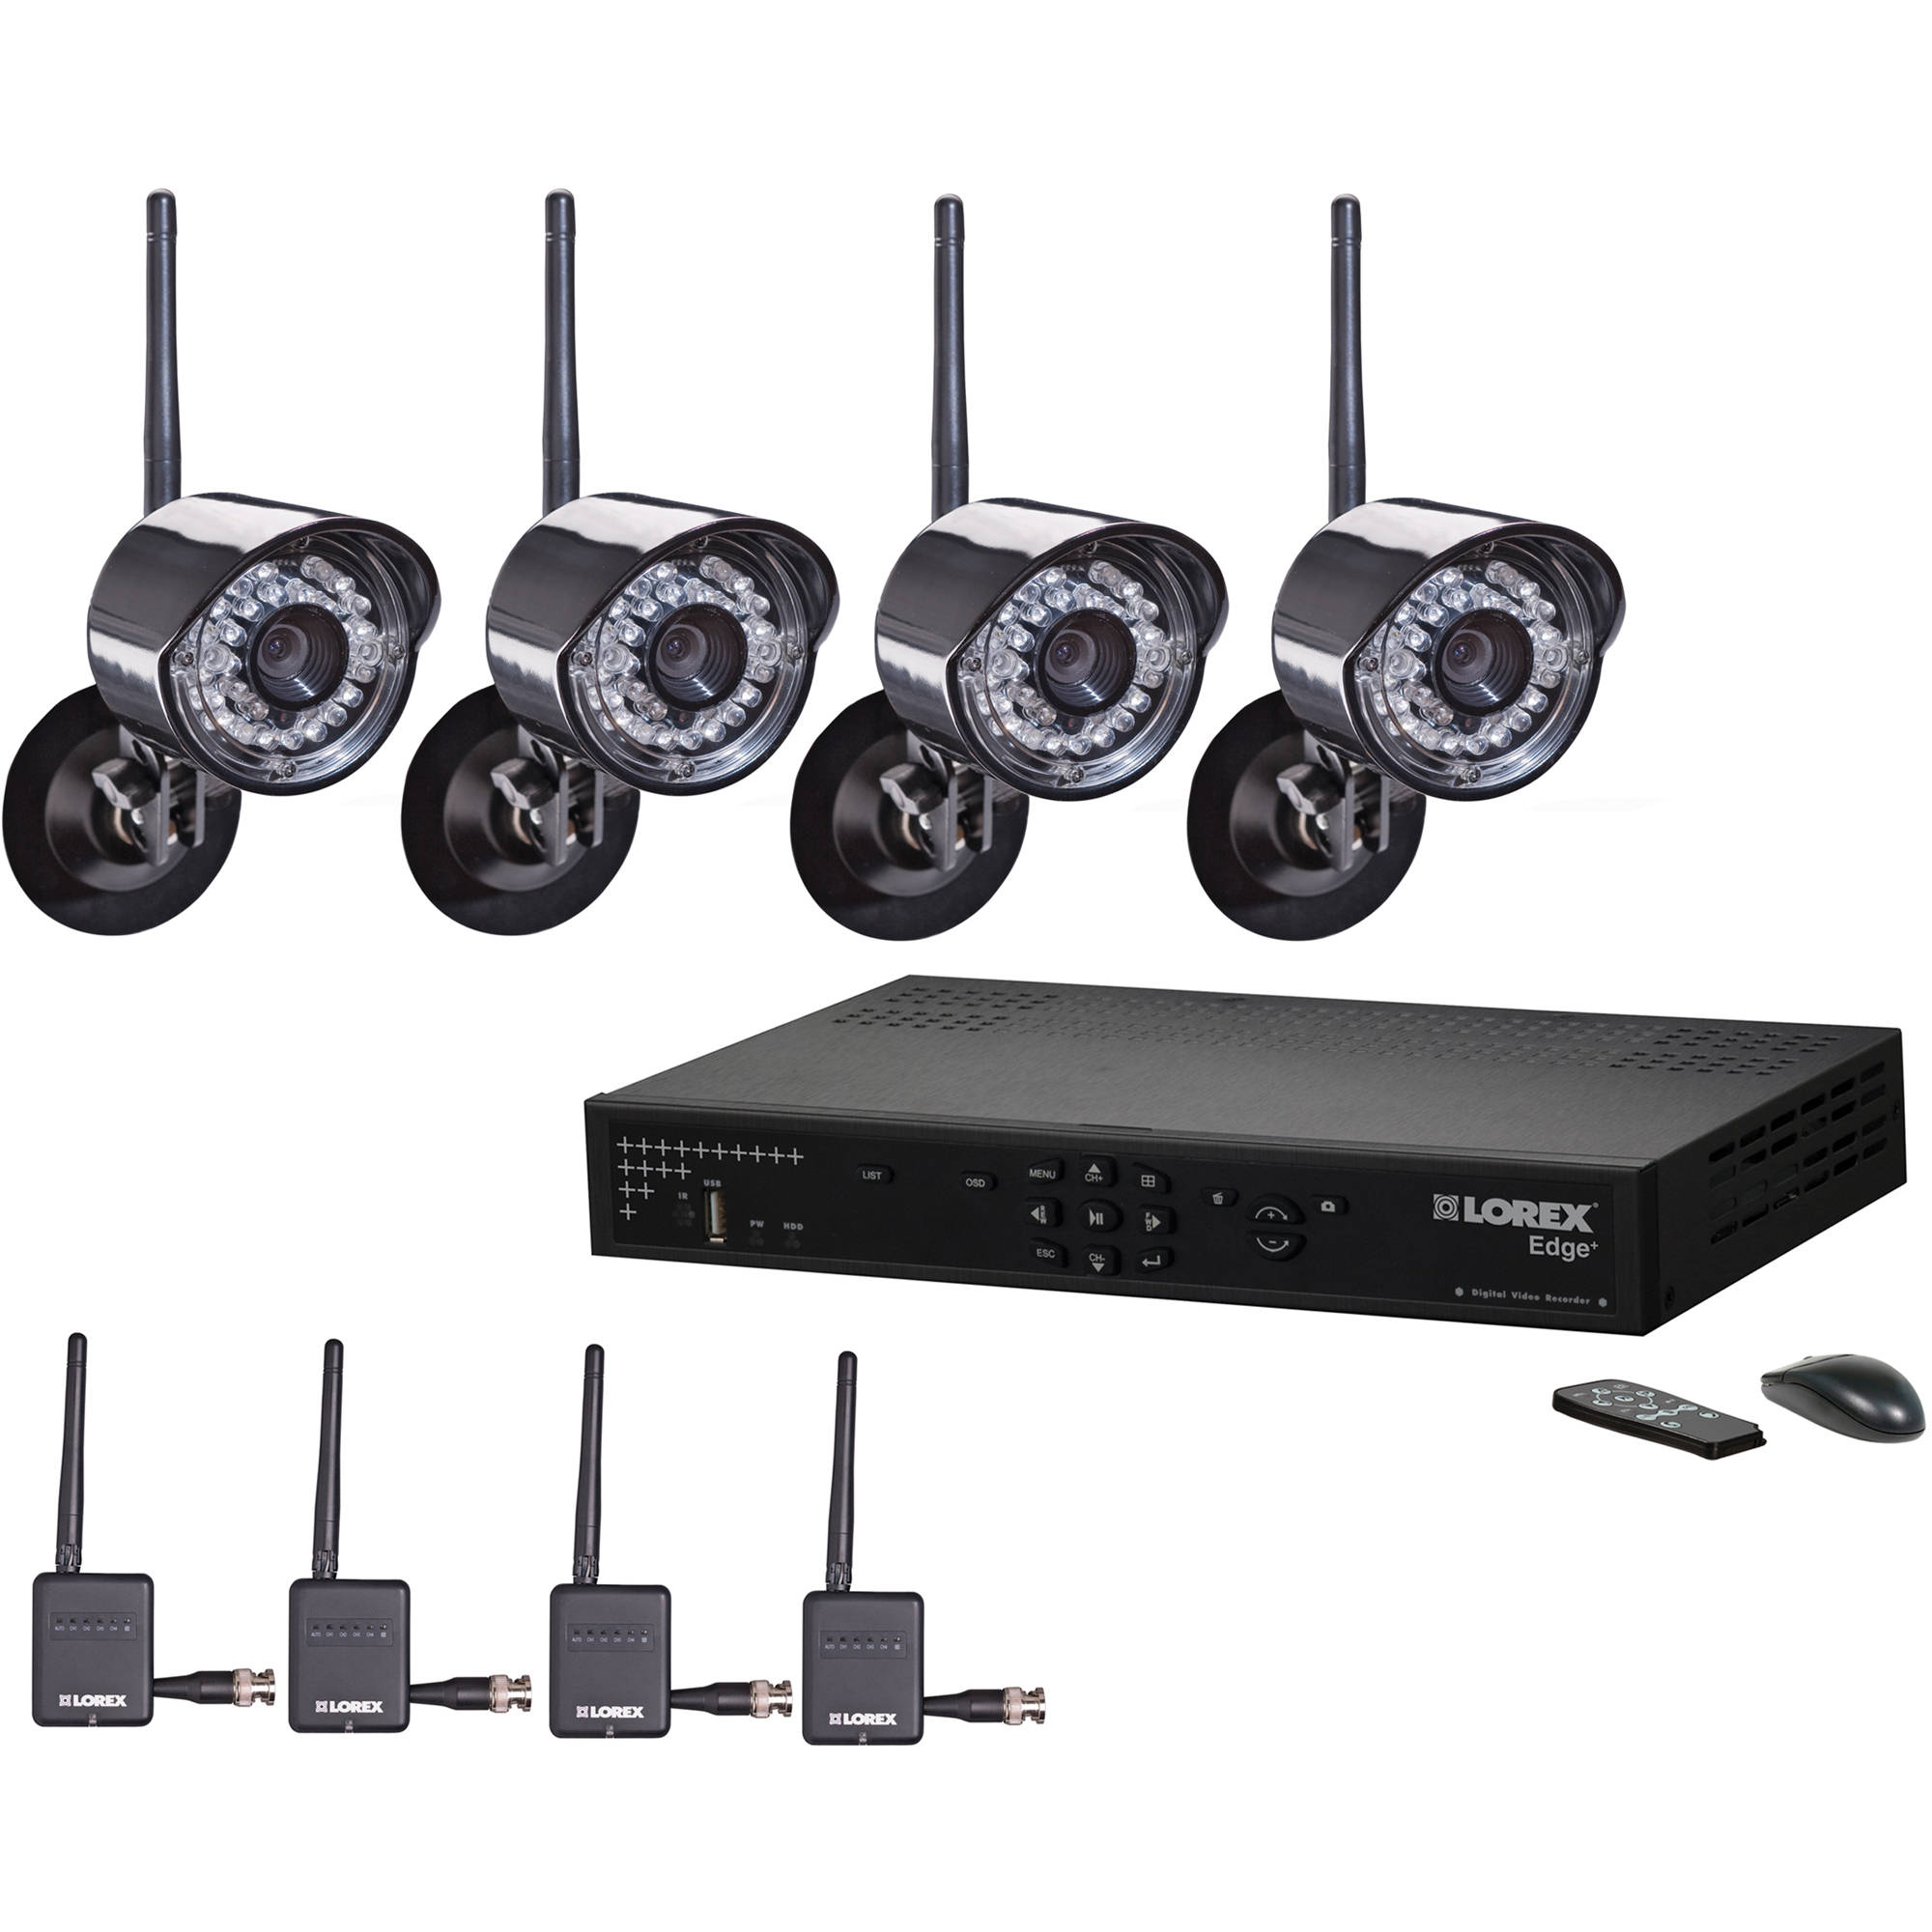 Lorex 8CH 4K DVR 2TB 4 UHD 4K Bullet Camera Security System 4 UHD 4K Bullet Cameras with Color Night Vision™ 8-channel 4K DVR RG Cabling Remote Viewing Available Via Free App.